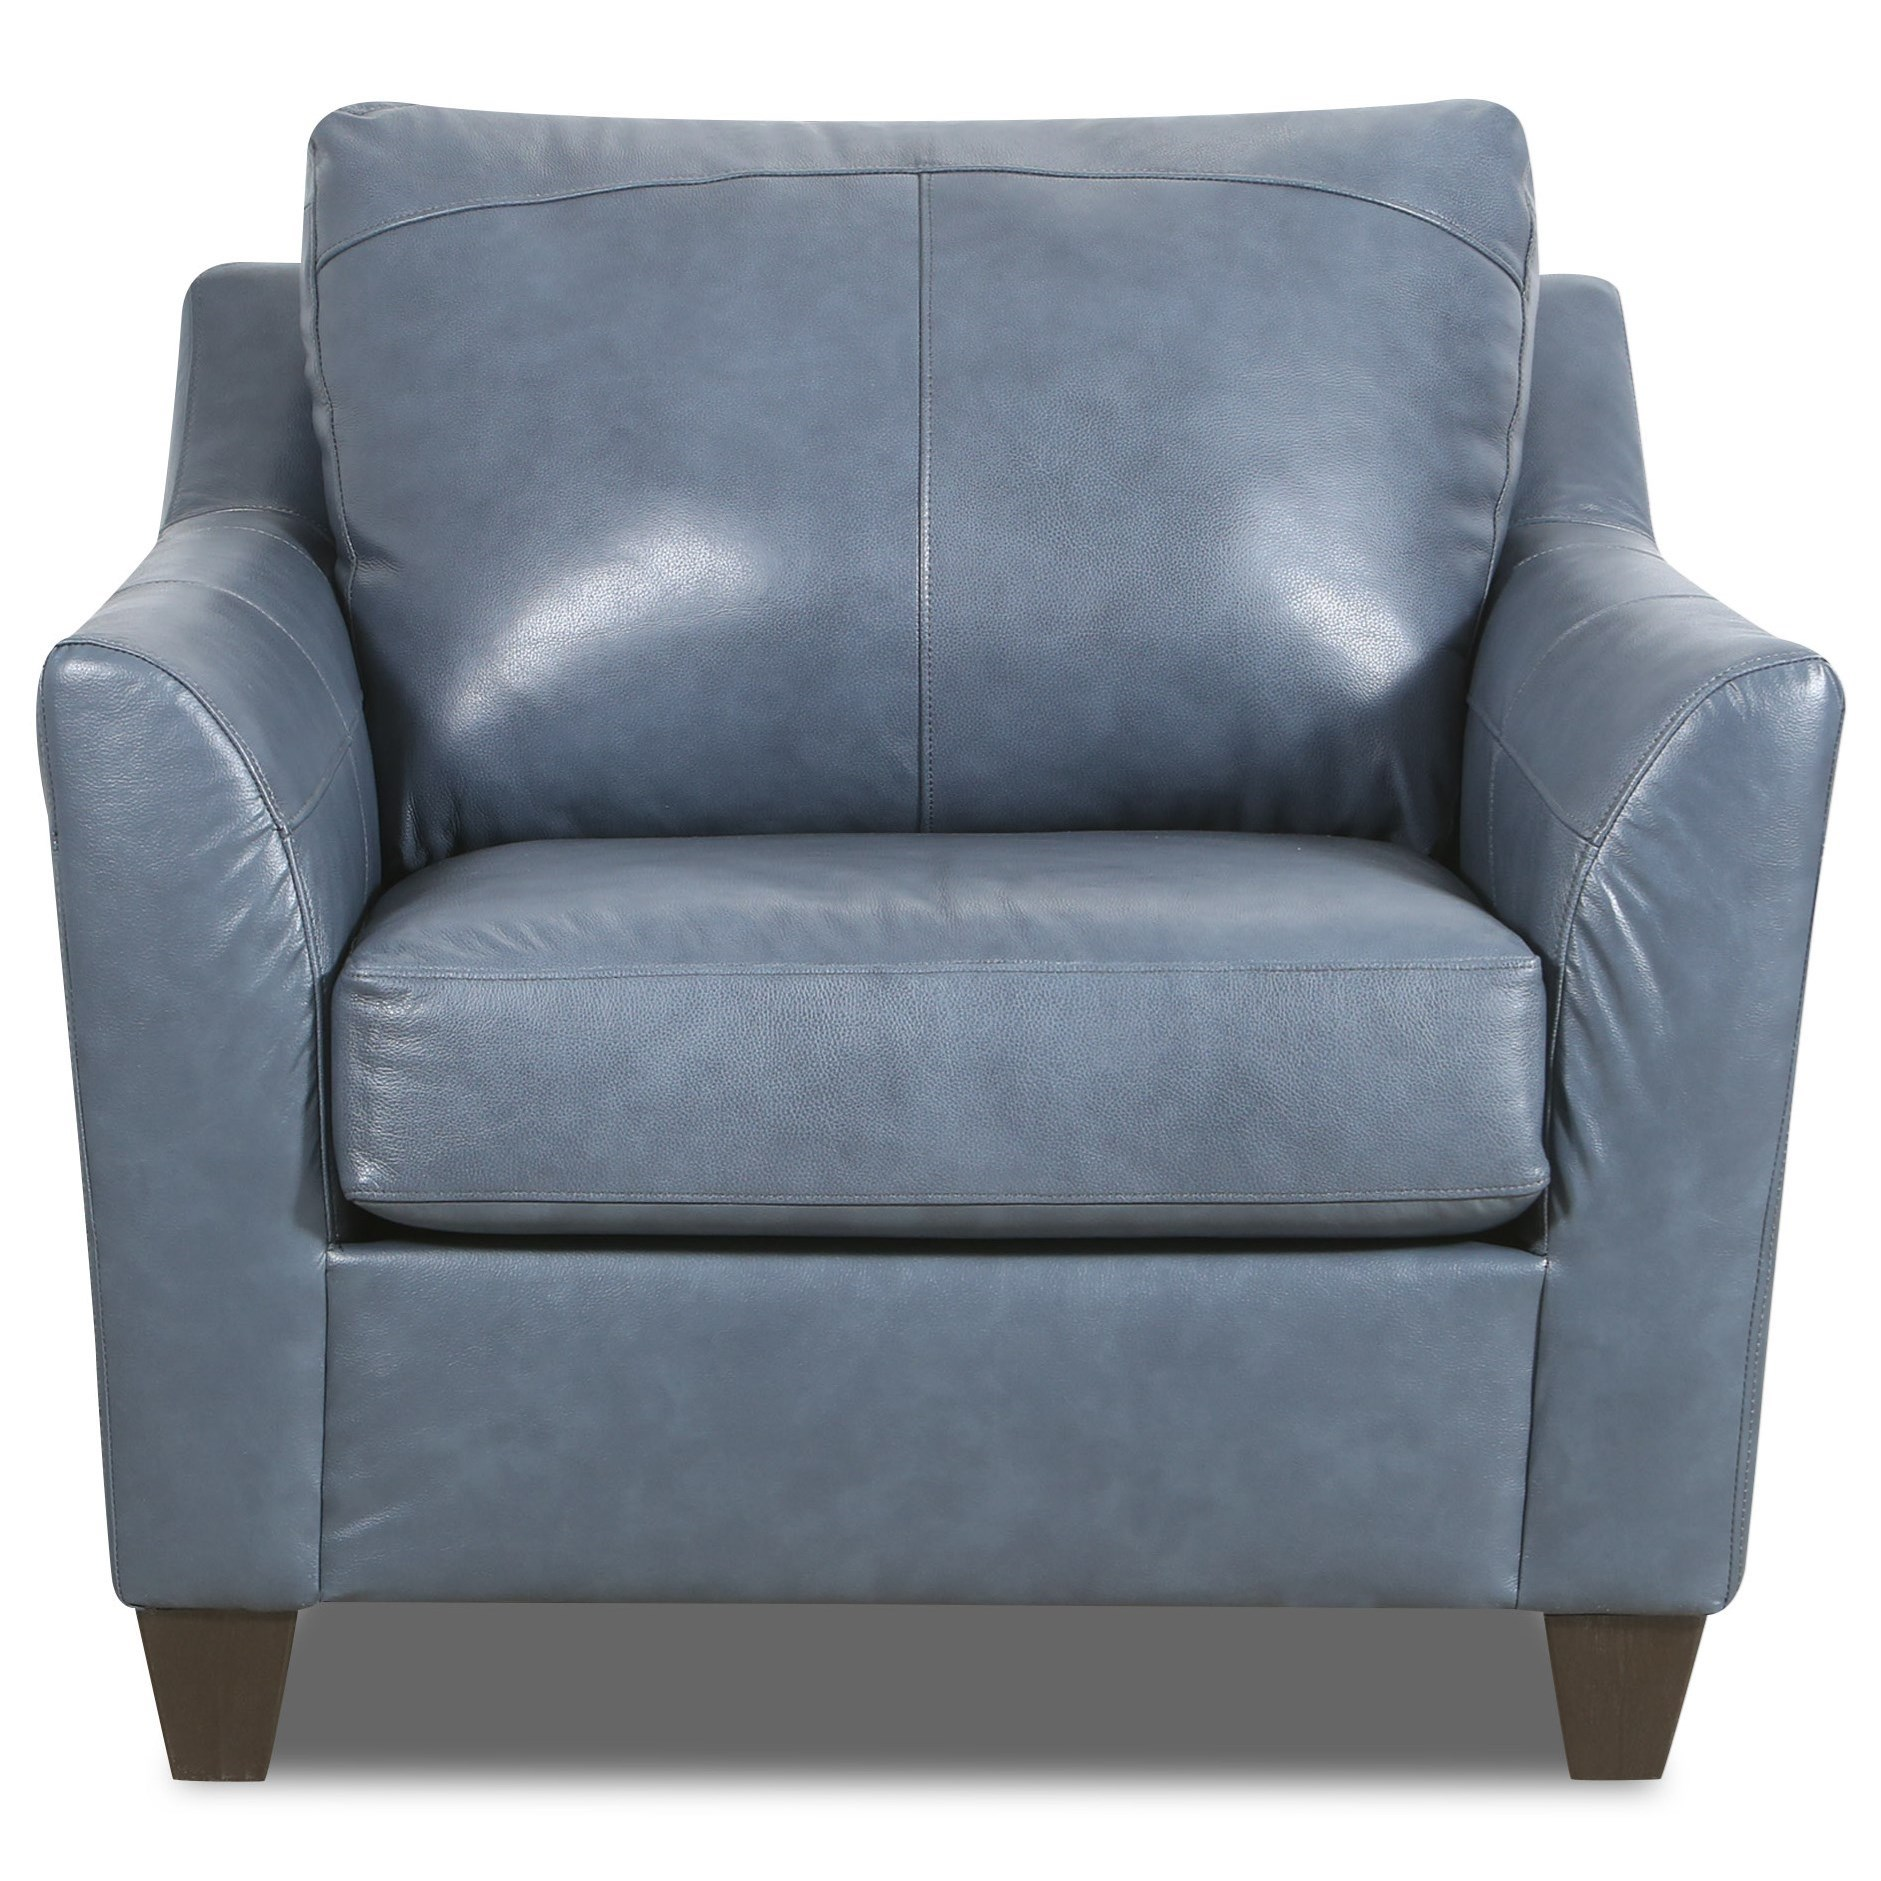 2029 Chair by Lane at Powell's Furniture and Mattress